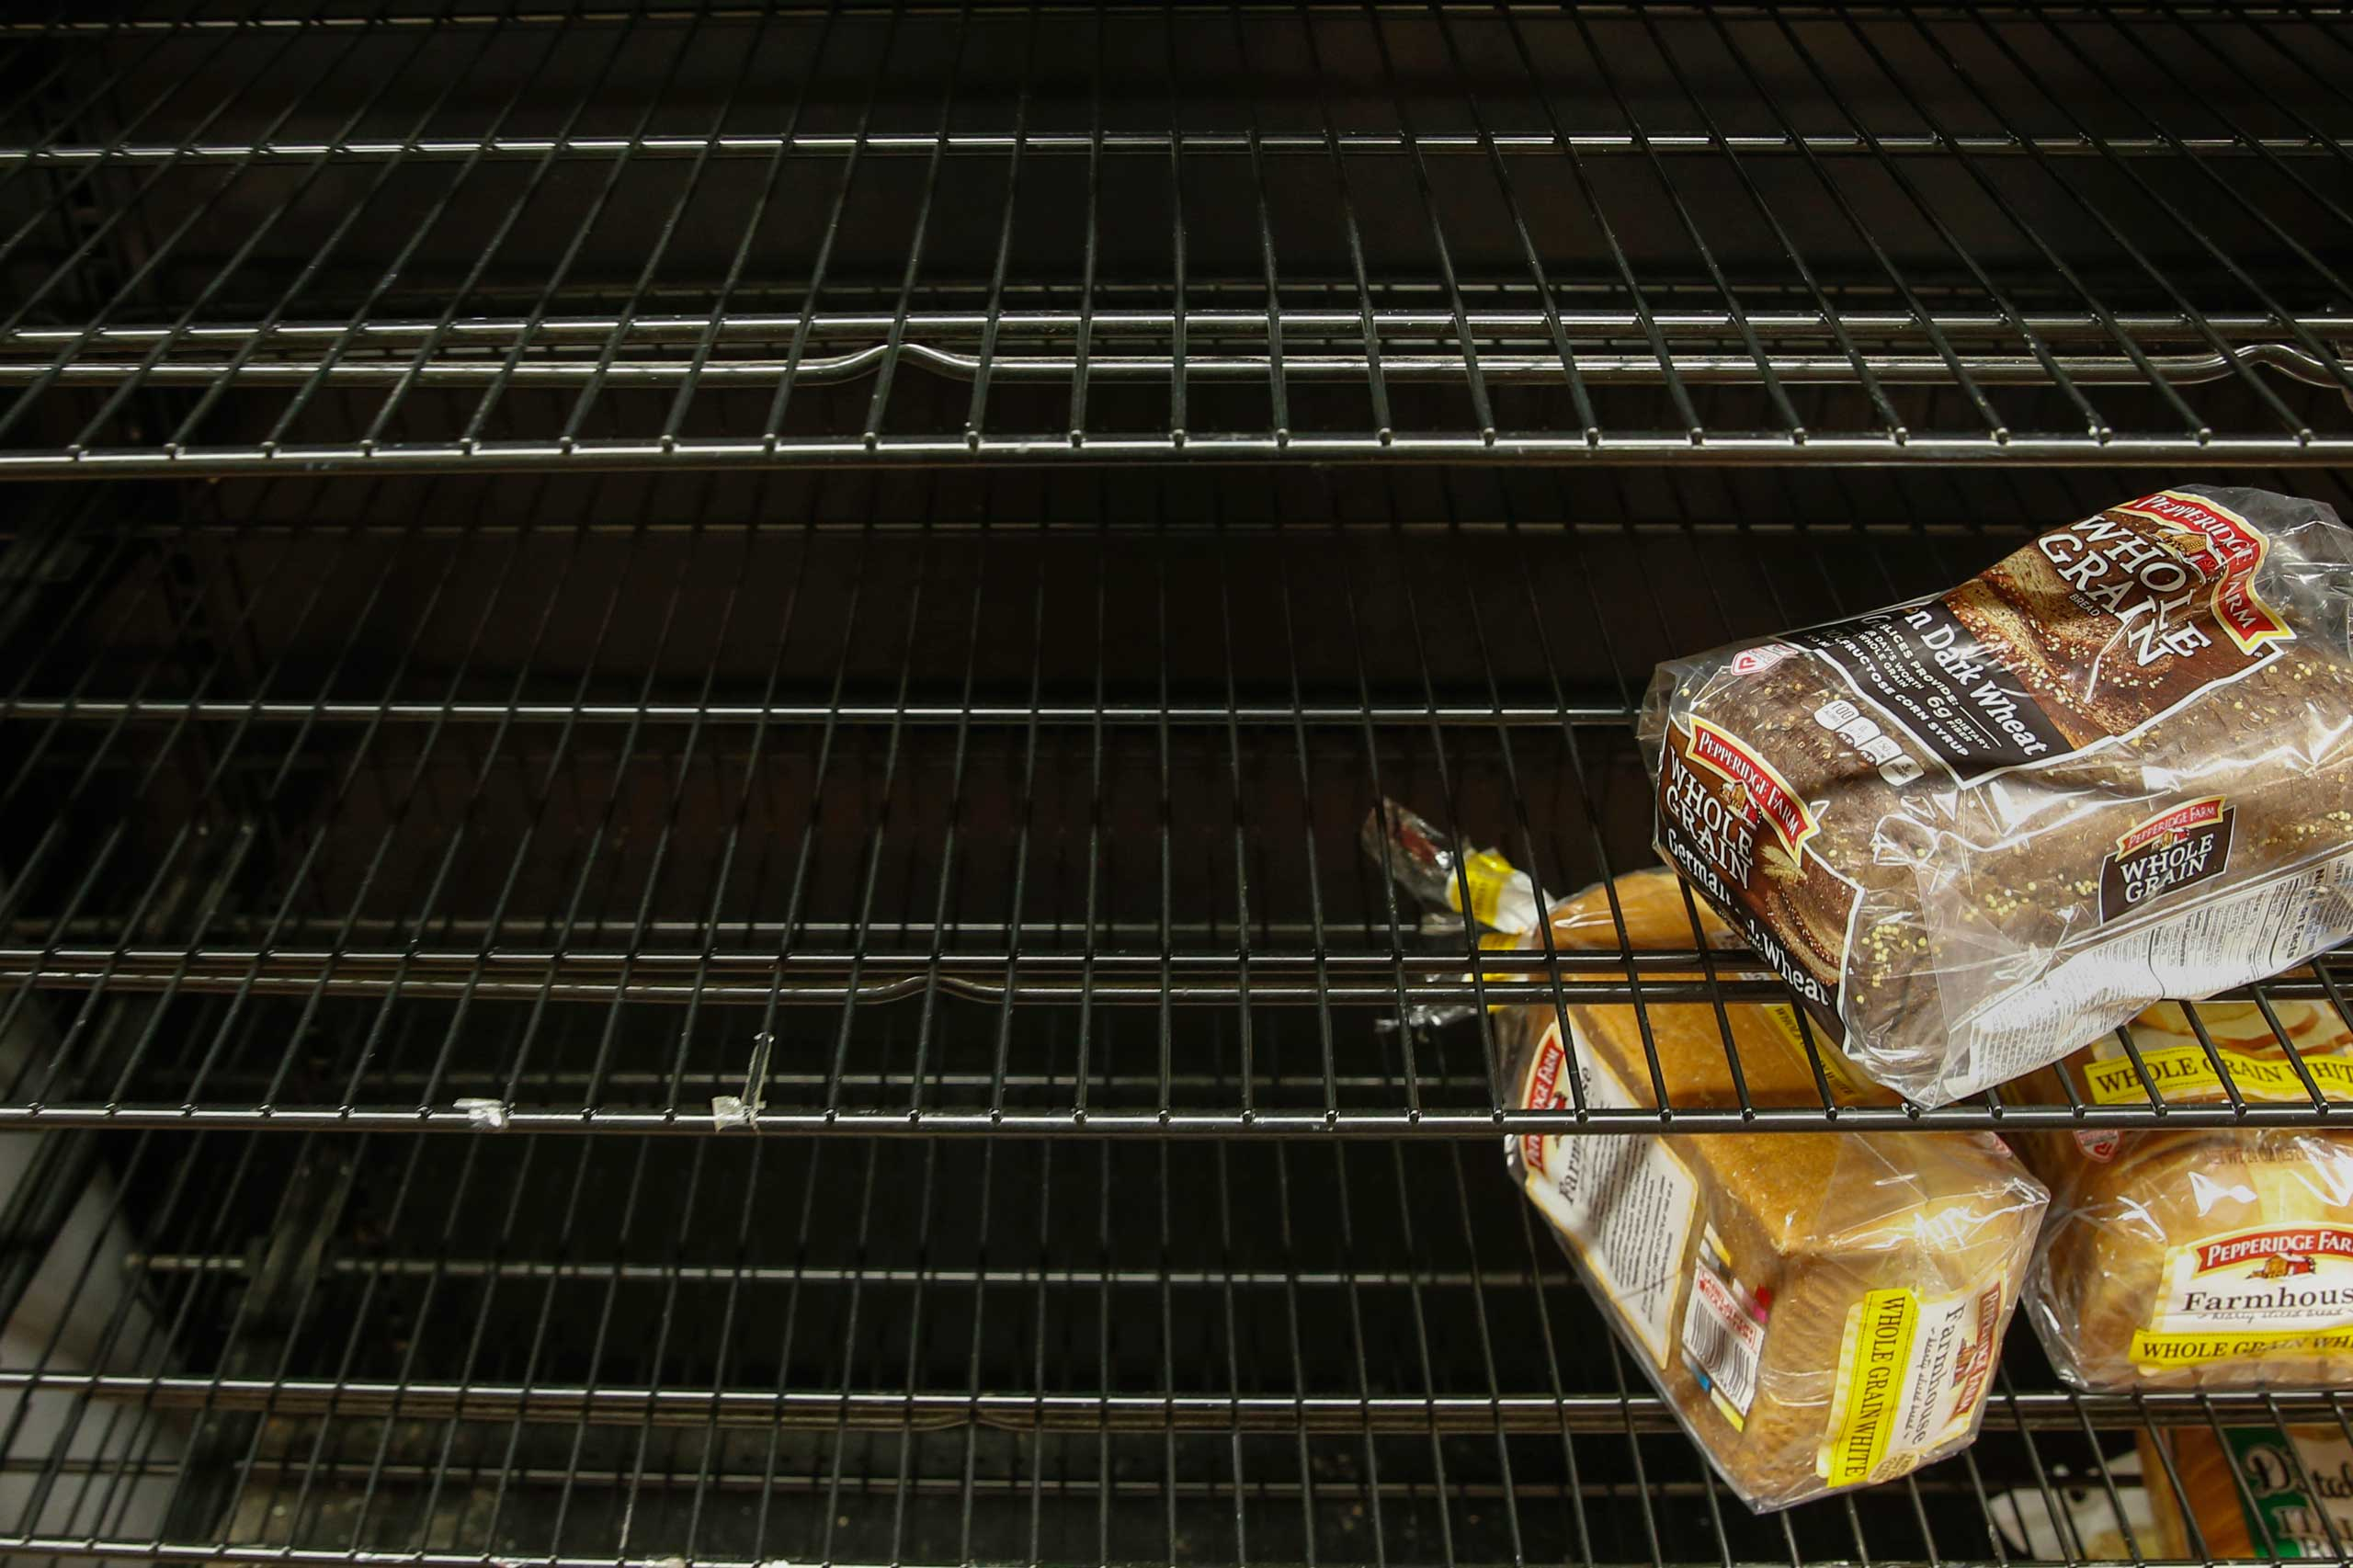 Loaves of bread sit on a sparse shelf at a grocery store in Port Washington, New York on Jan. 26, 2015.